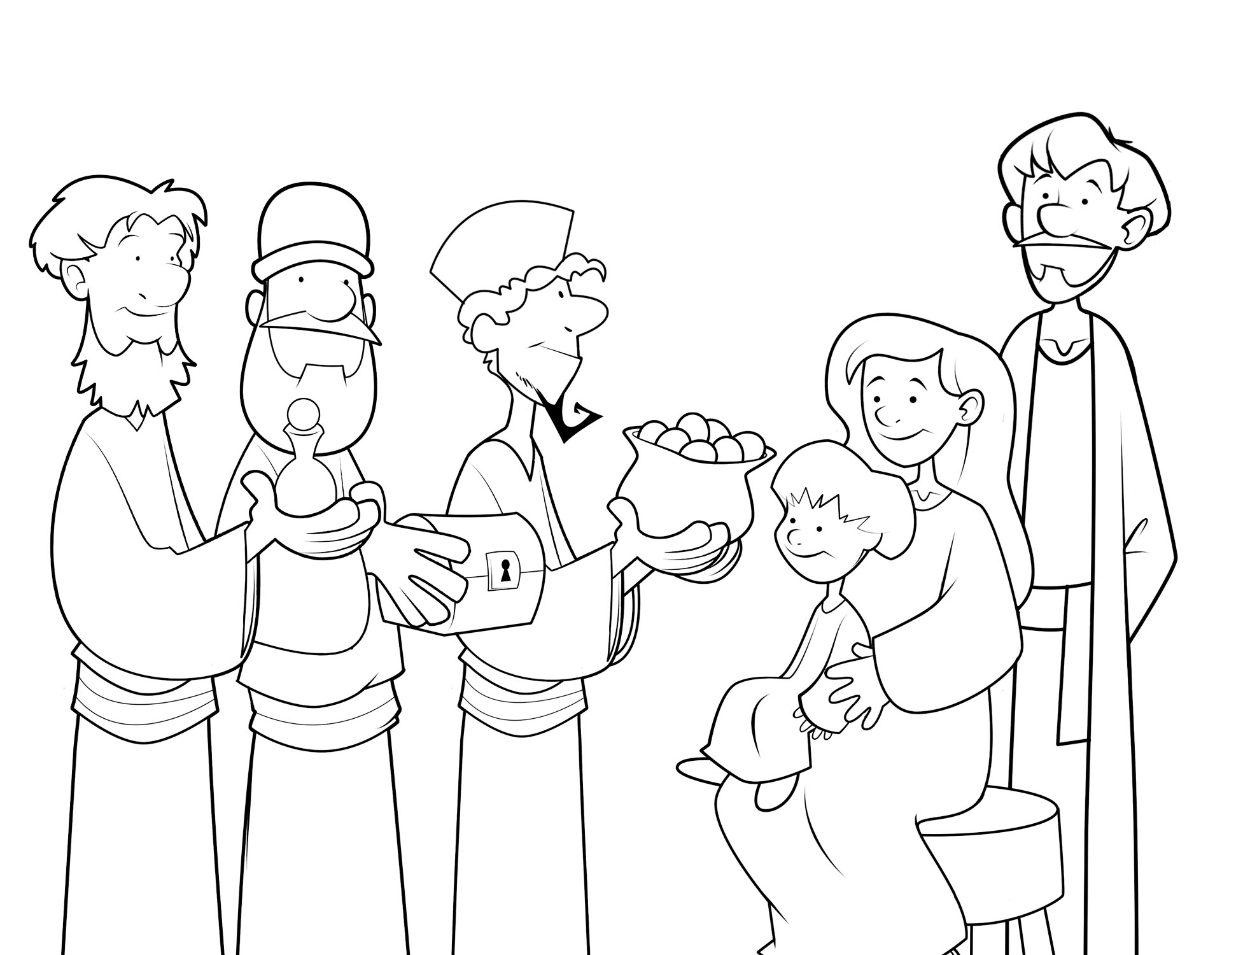 3 Wise Men Coloring Pages, wise man coloring page biblical magi.